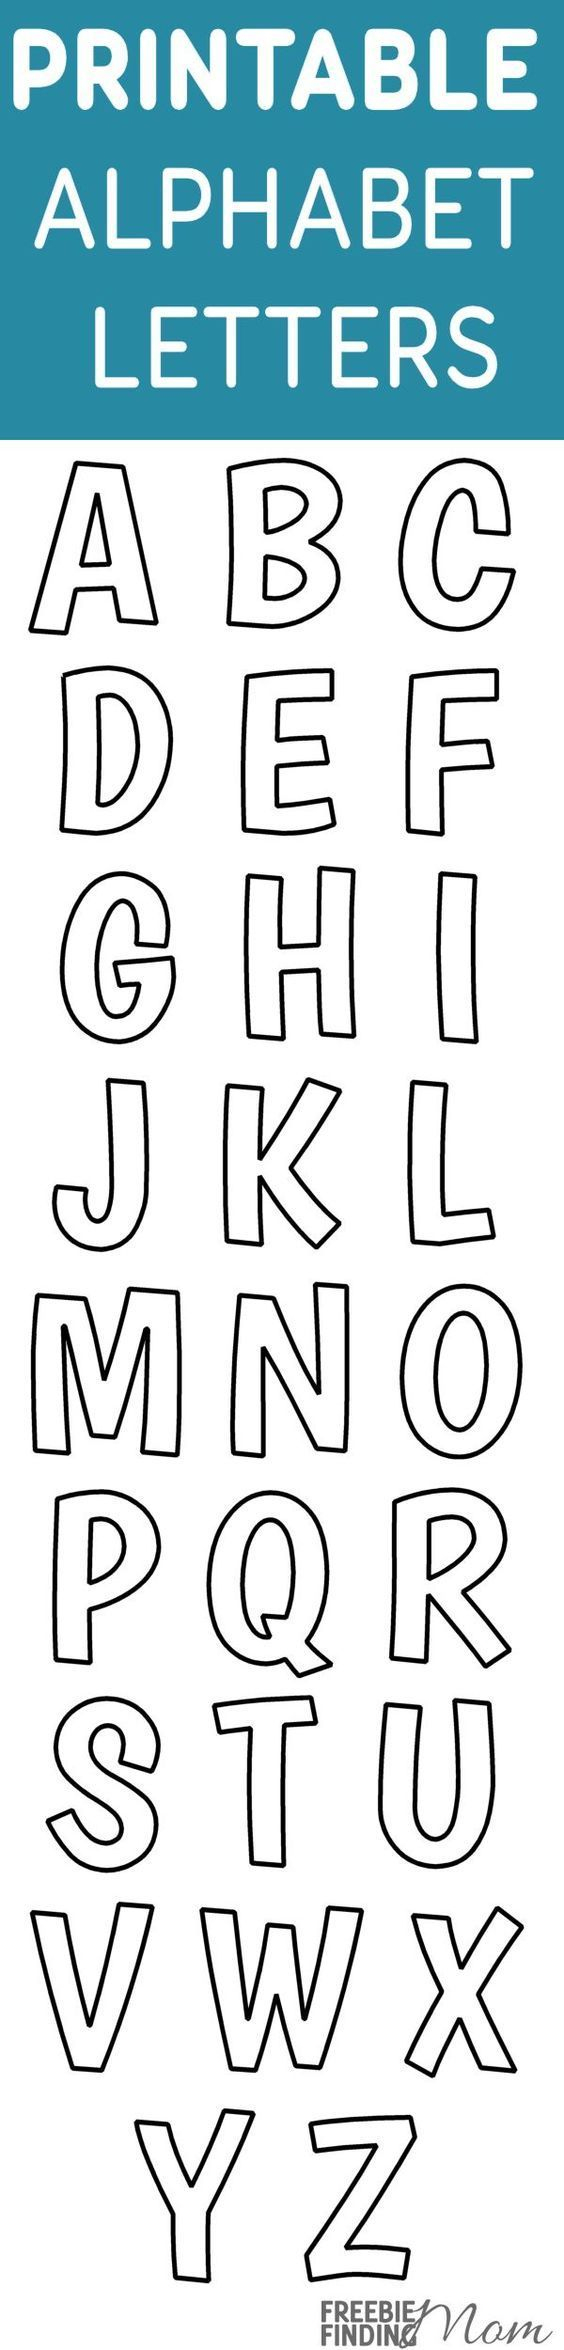 Printable Free Alphabet Templates | The Group Board On Pinterest - Free Printable Letter Templates